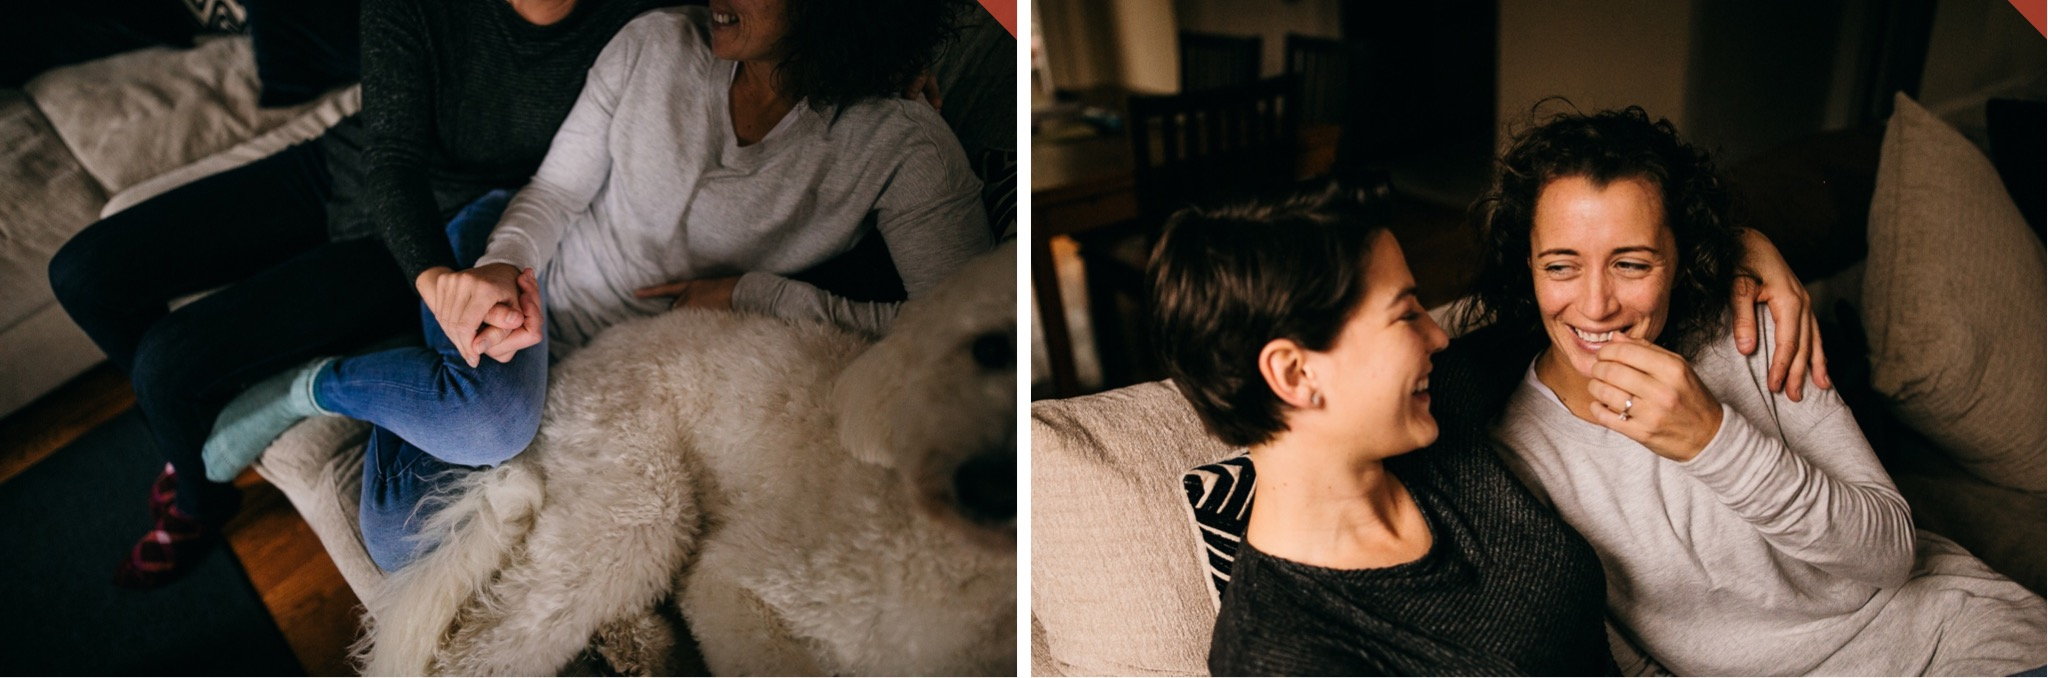 A lesbian couple cuddles on the couch with their dog.